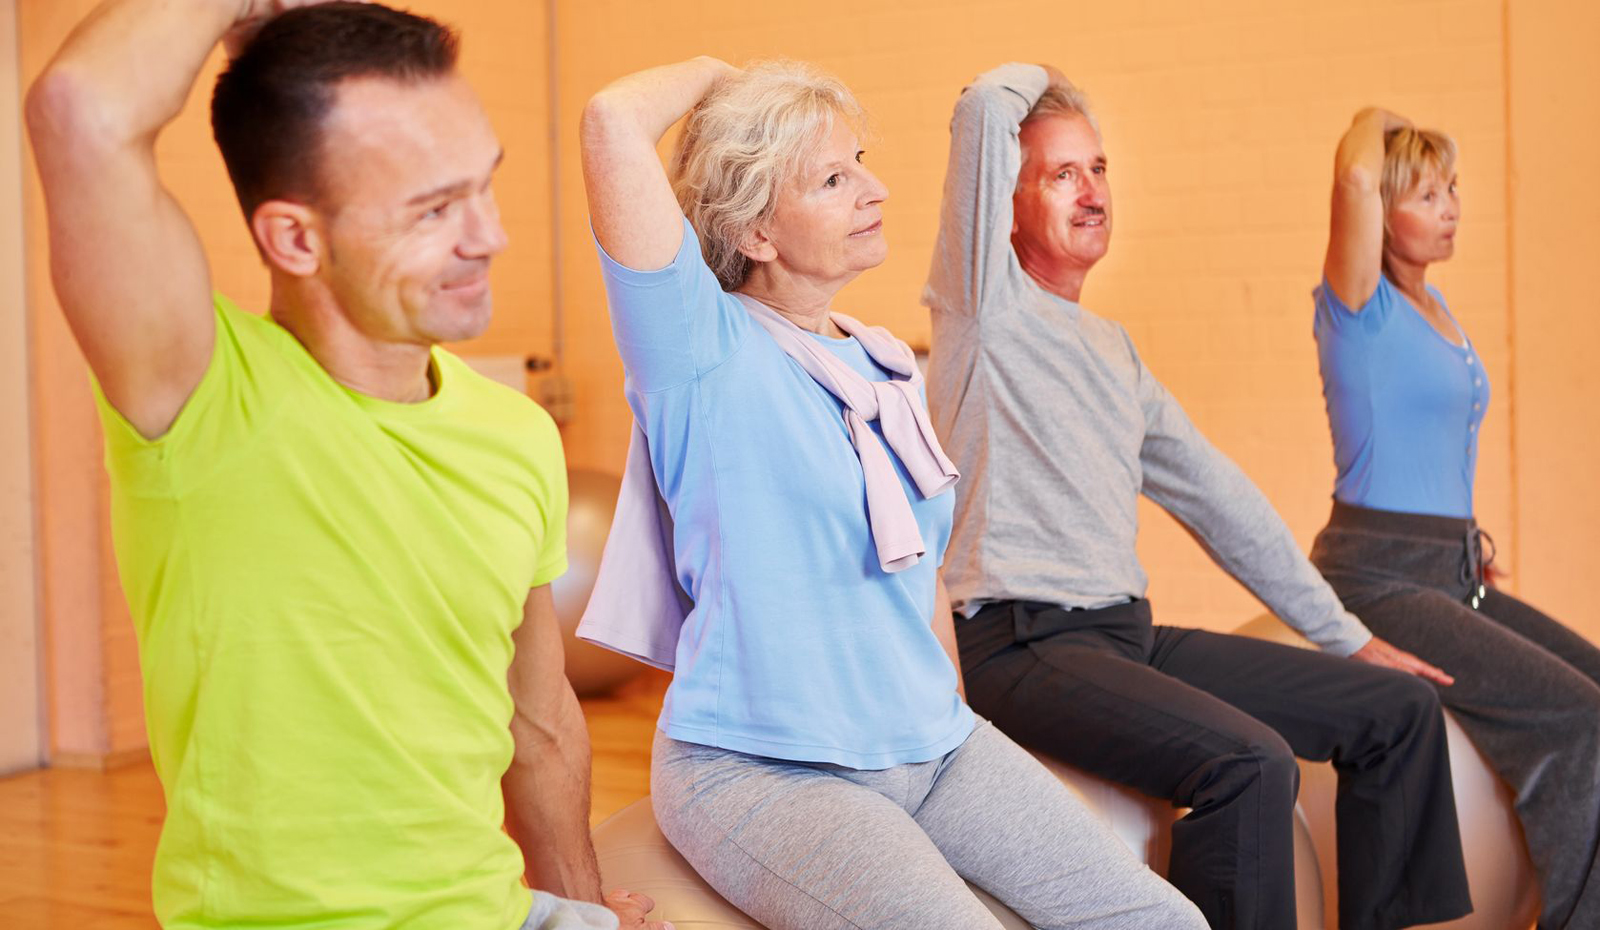 <div class='slider_caption'> <h1>If you're looking for personal attention, engaging fun, and a competent staff to help you become all you can be, The Health Club for Seniors is the place for you!</h1><a class='slider-readmore' href='http://agingwithgraceinfo.org/health-wellness/'>Read More</a> </div>